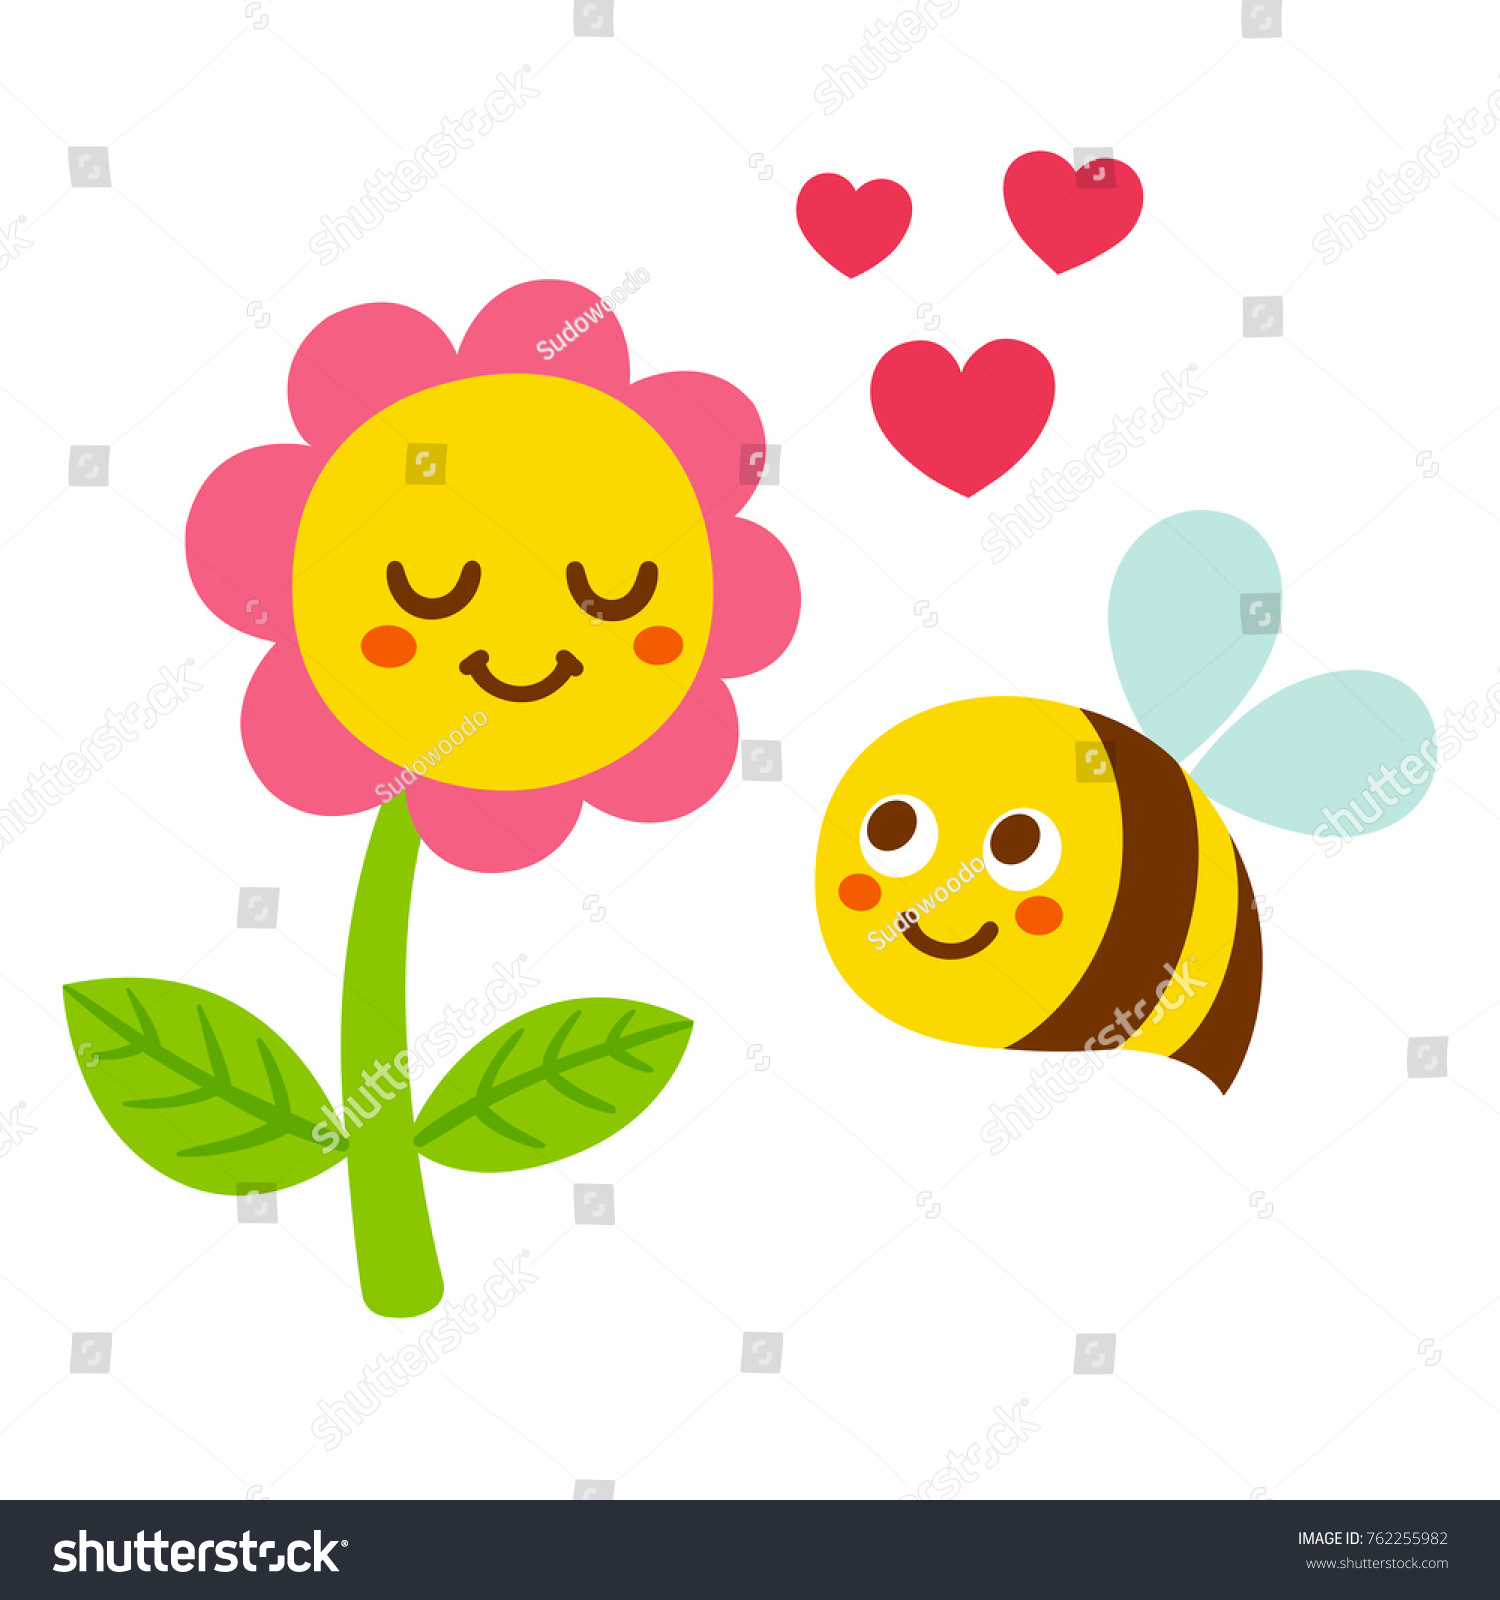 Cute Cartoon Bee And Flower In Love With Smiling Faces Hearts Adorable Valentines